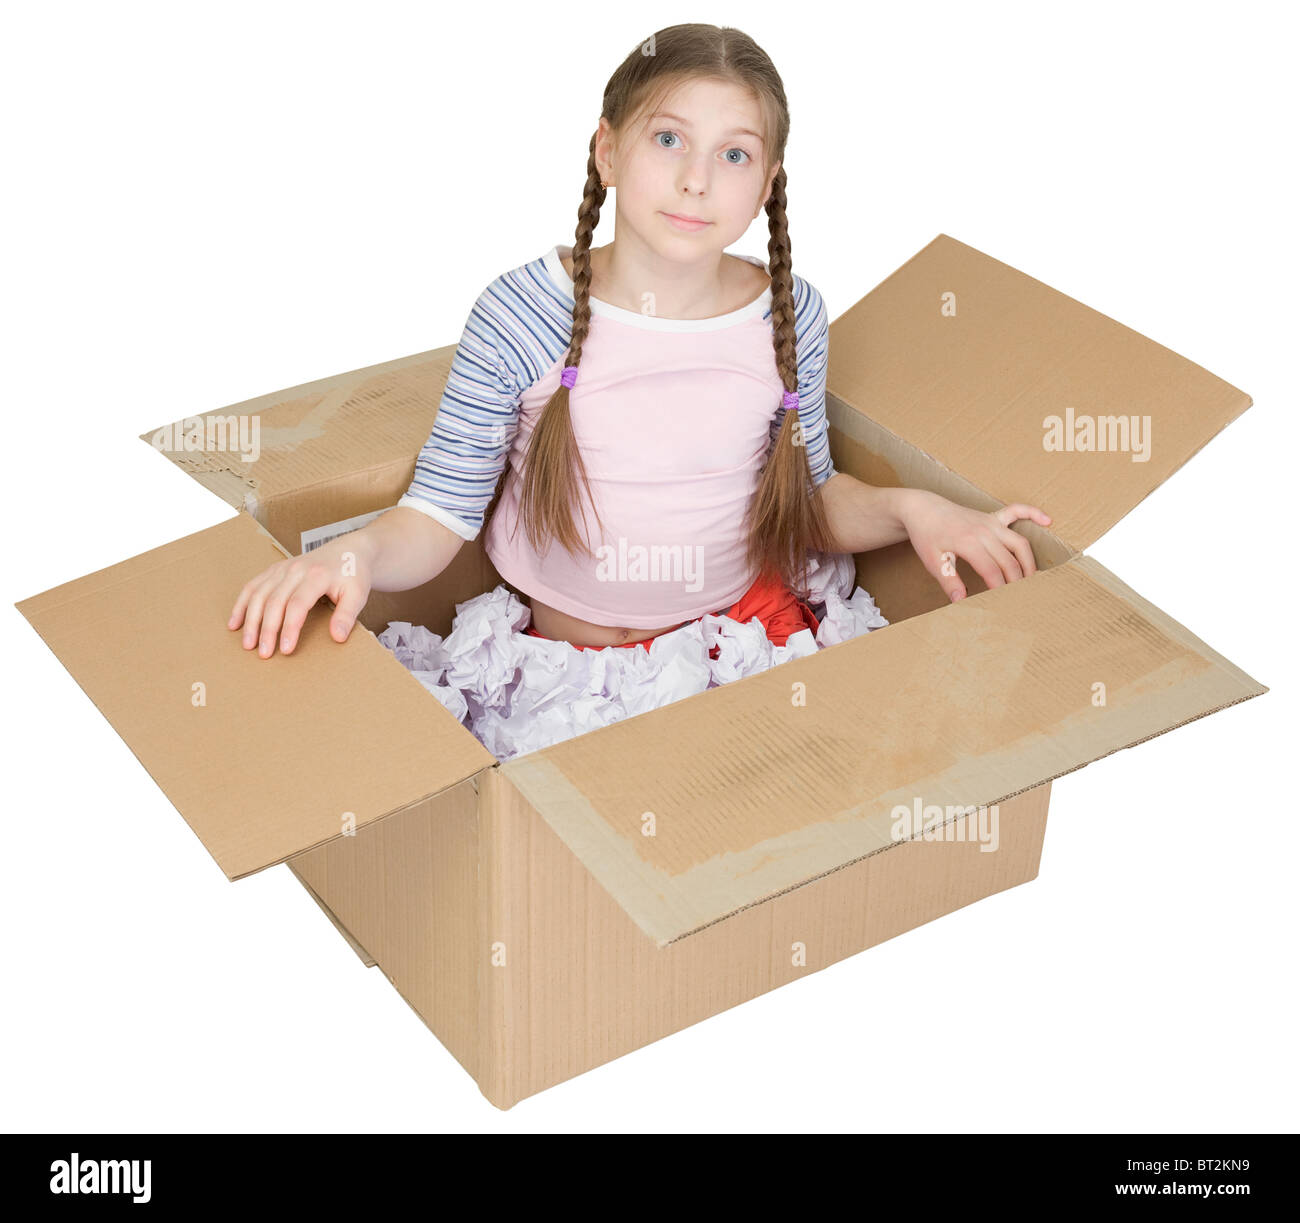 The little girl sits in a cardboard box - Stock Image